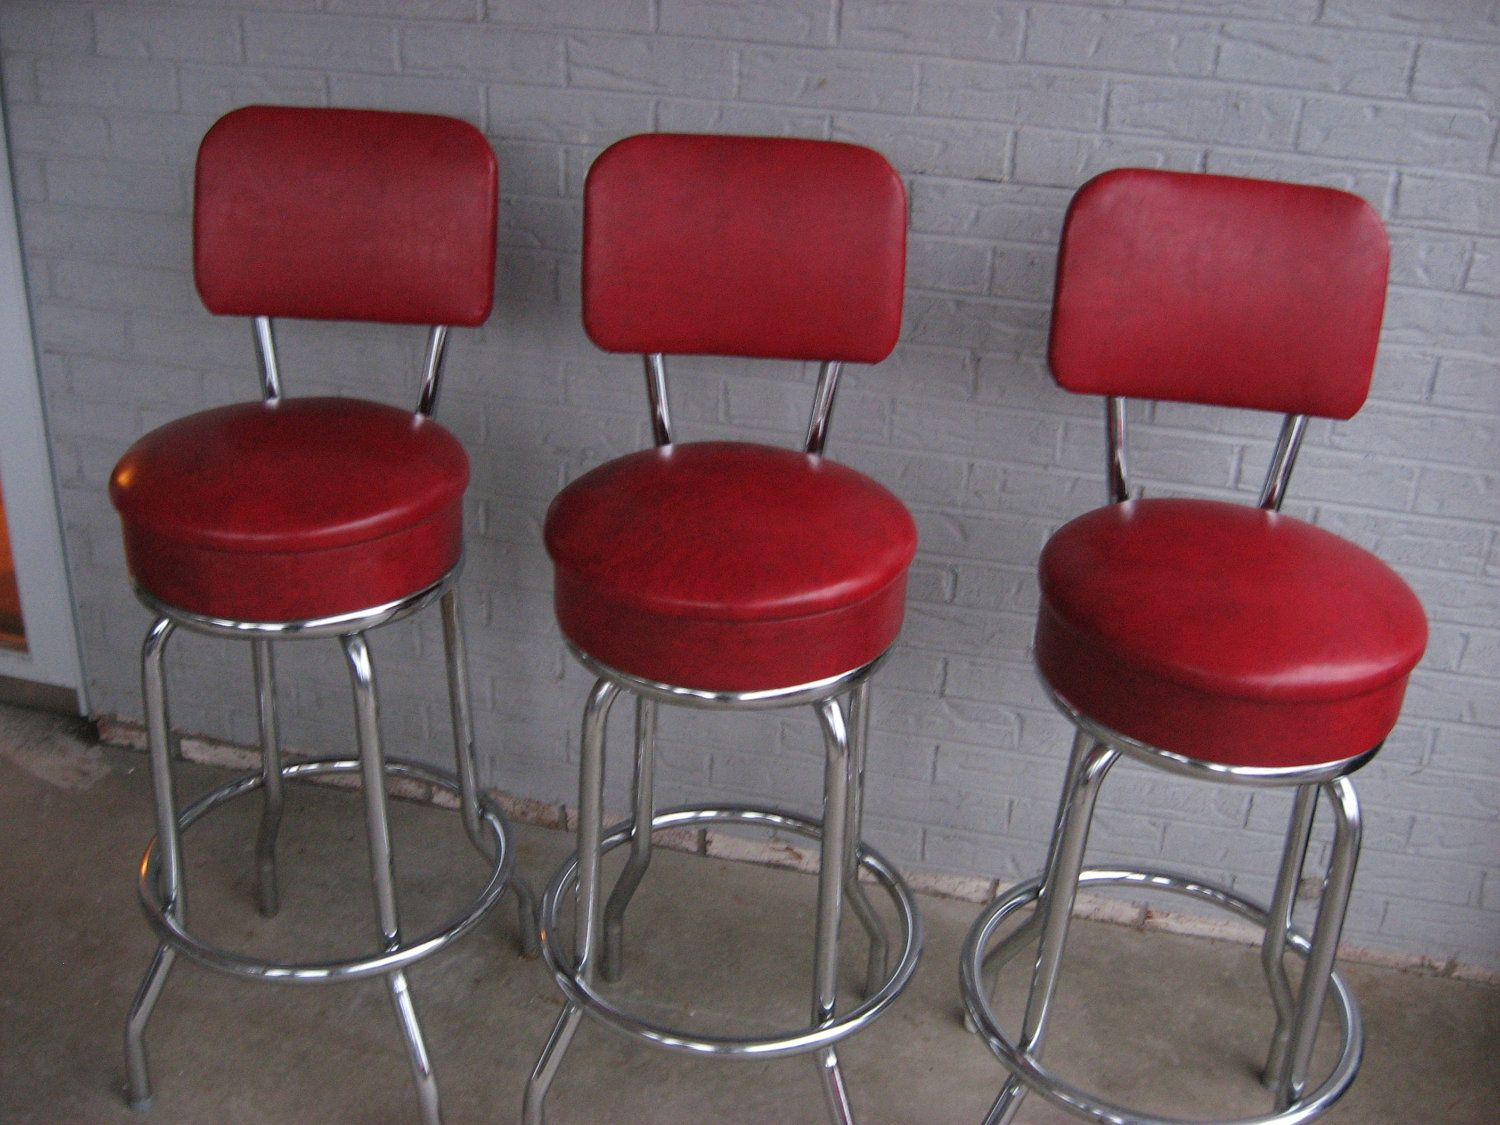 Three 3 Vintage Retro 1950s 1960s Red Bar Stools By Treasurehut